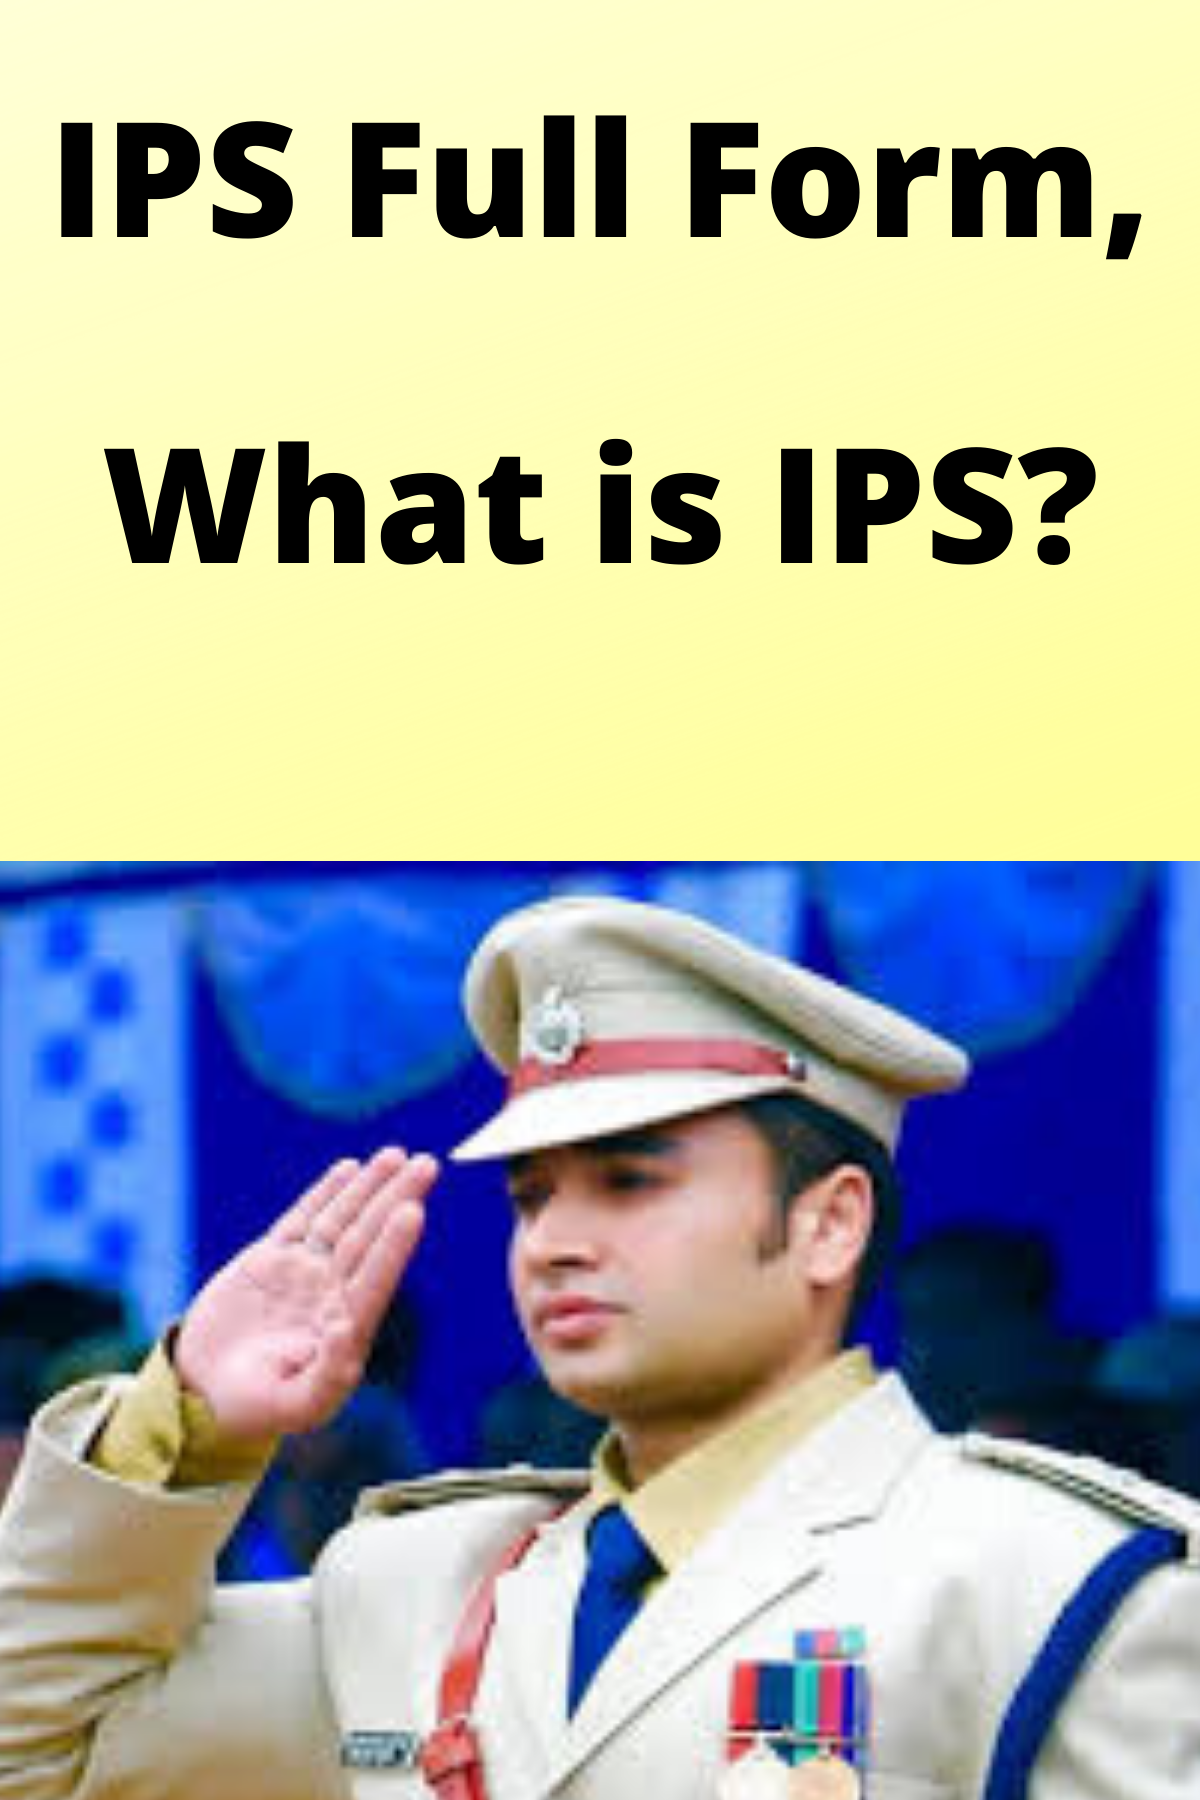 IPS Full Form, What is IPS? in 2020 (With images) Indian